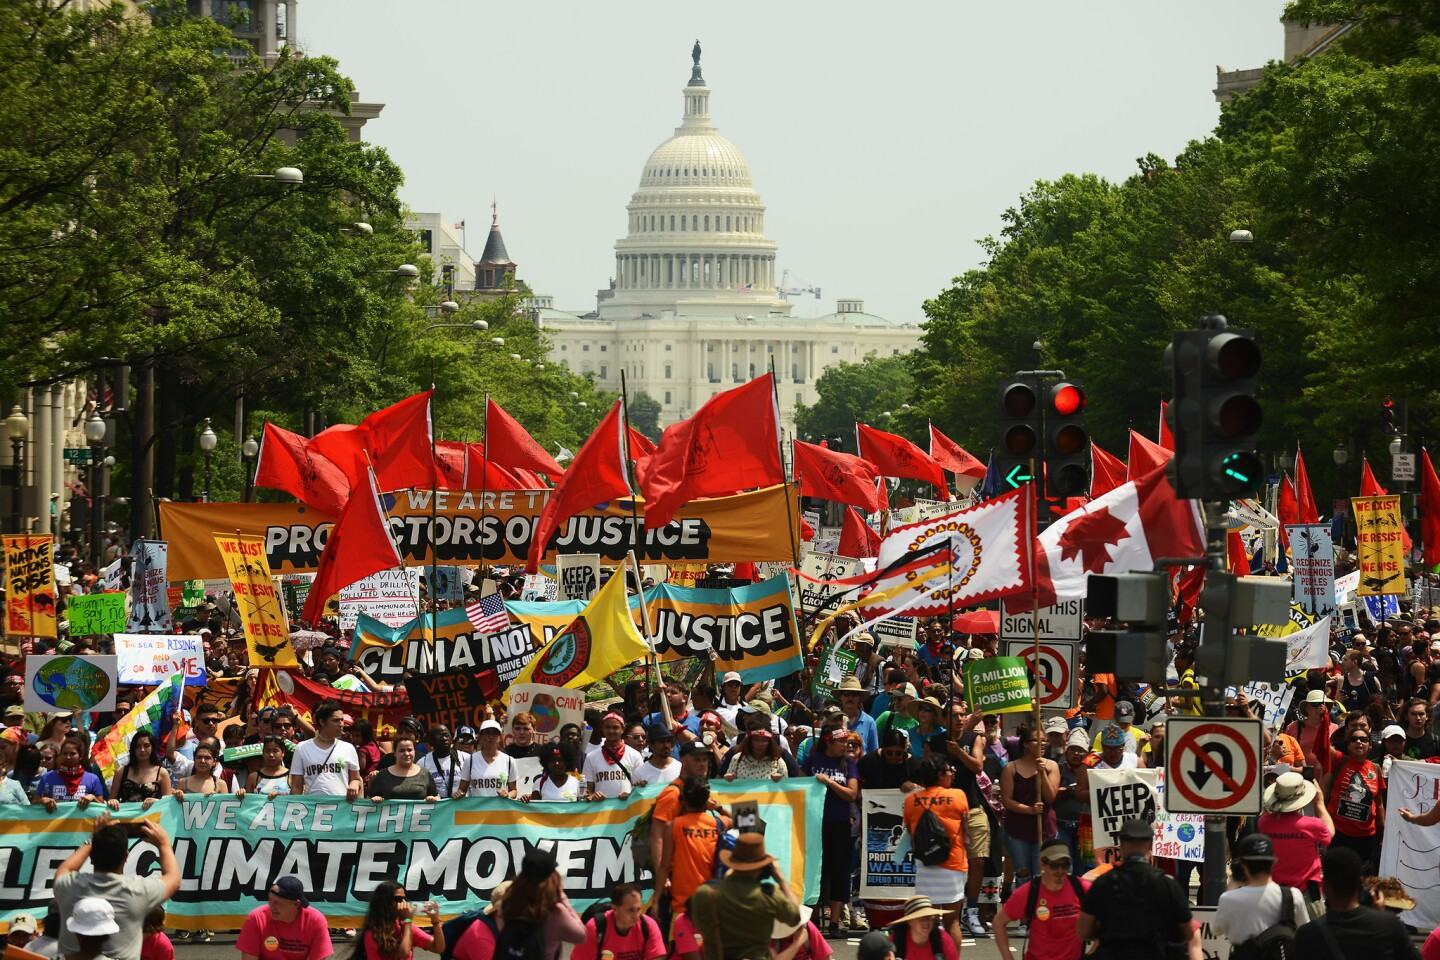 People march from the U.S. Capitol to the White House for the People's Climate Movement to protest President Donald Trump's enviromental policies on April 29, 2017 in Washington, D.C.